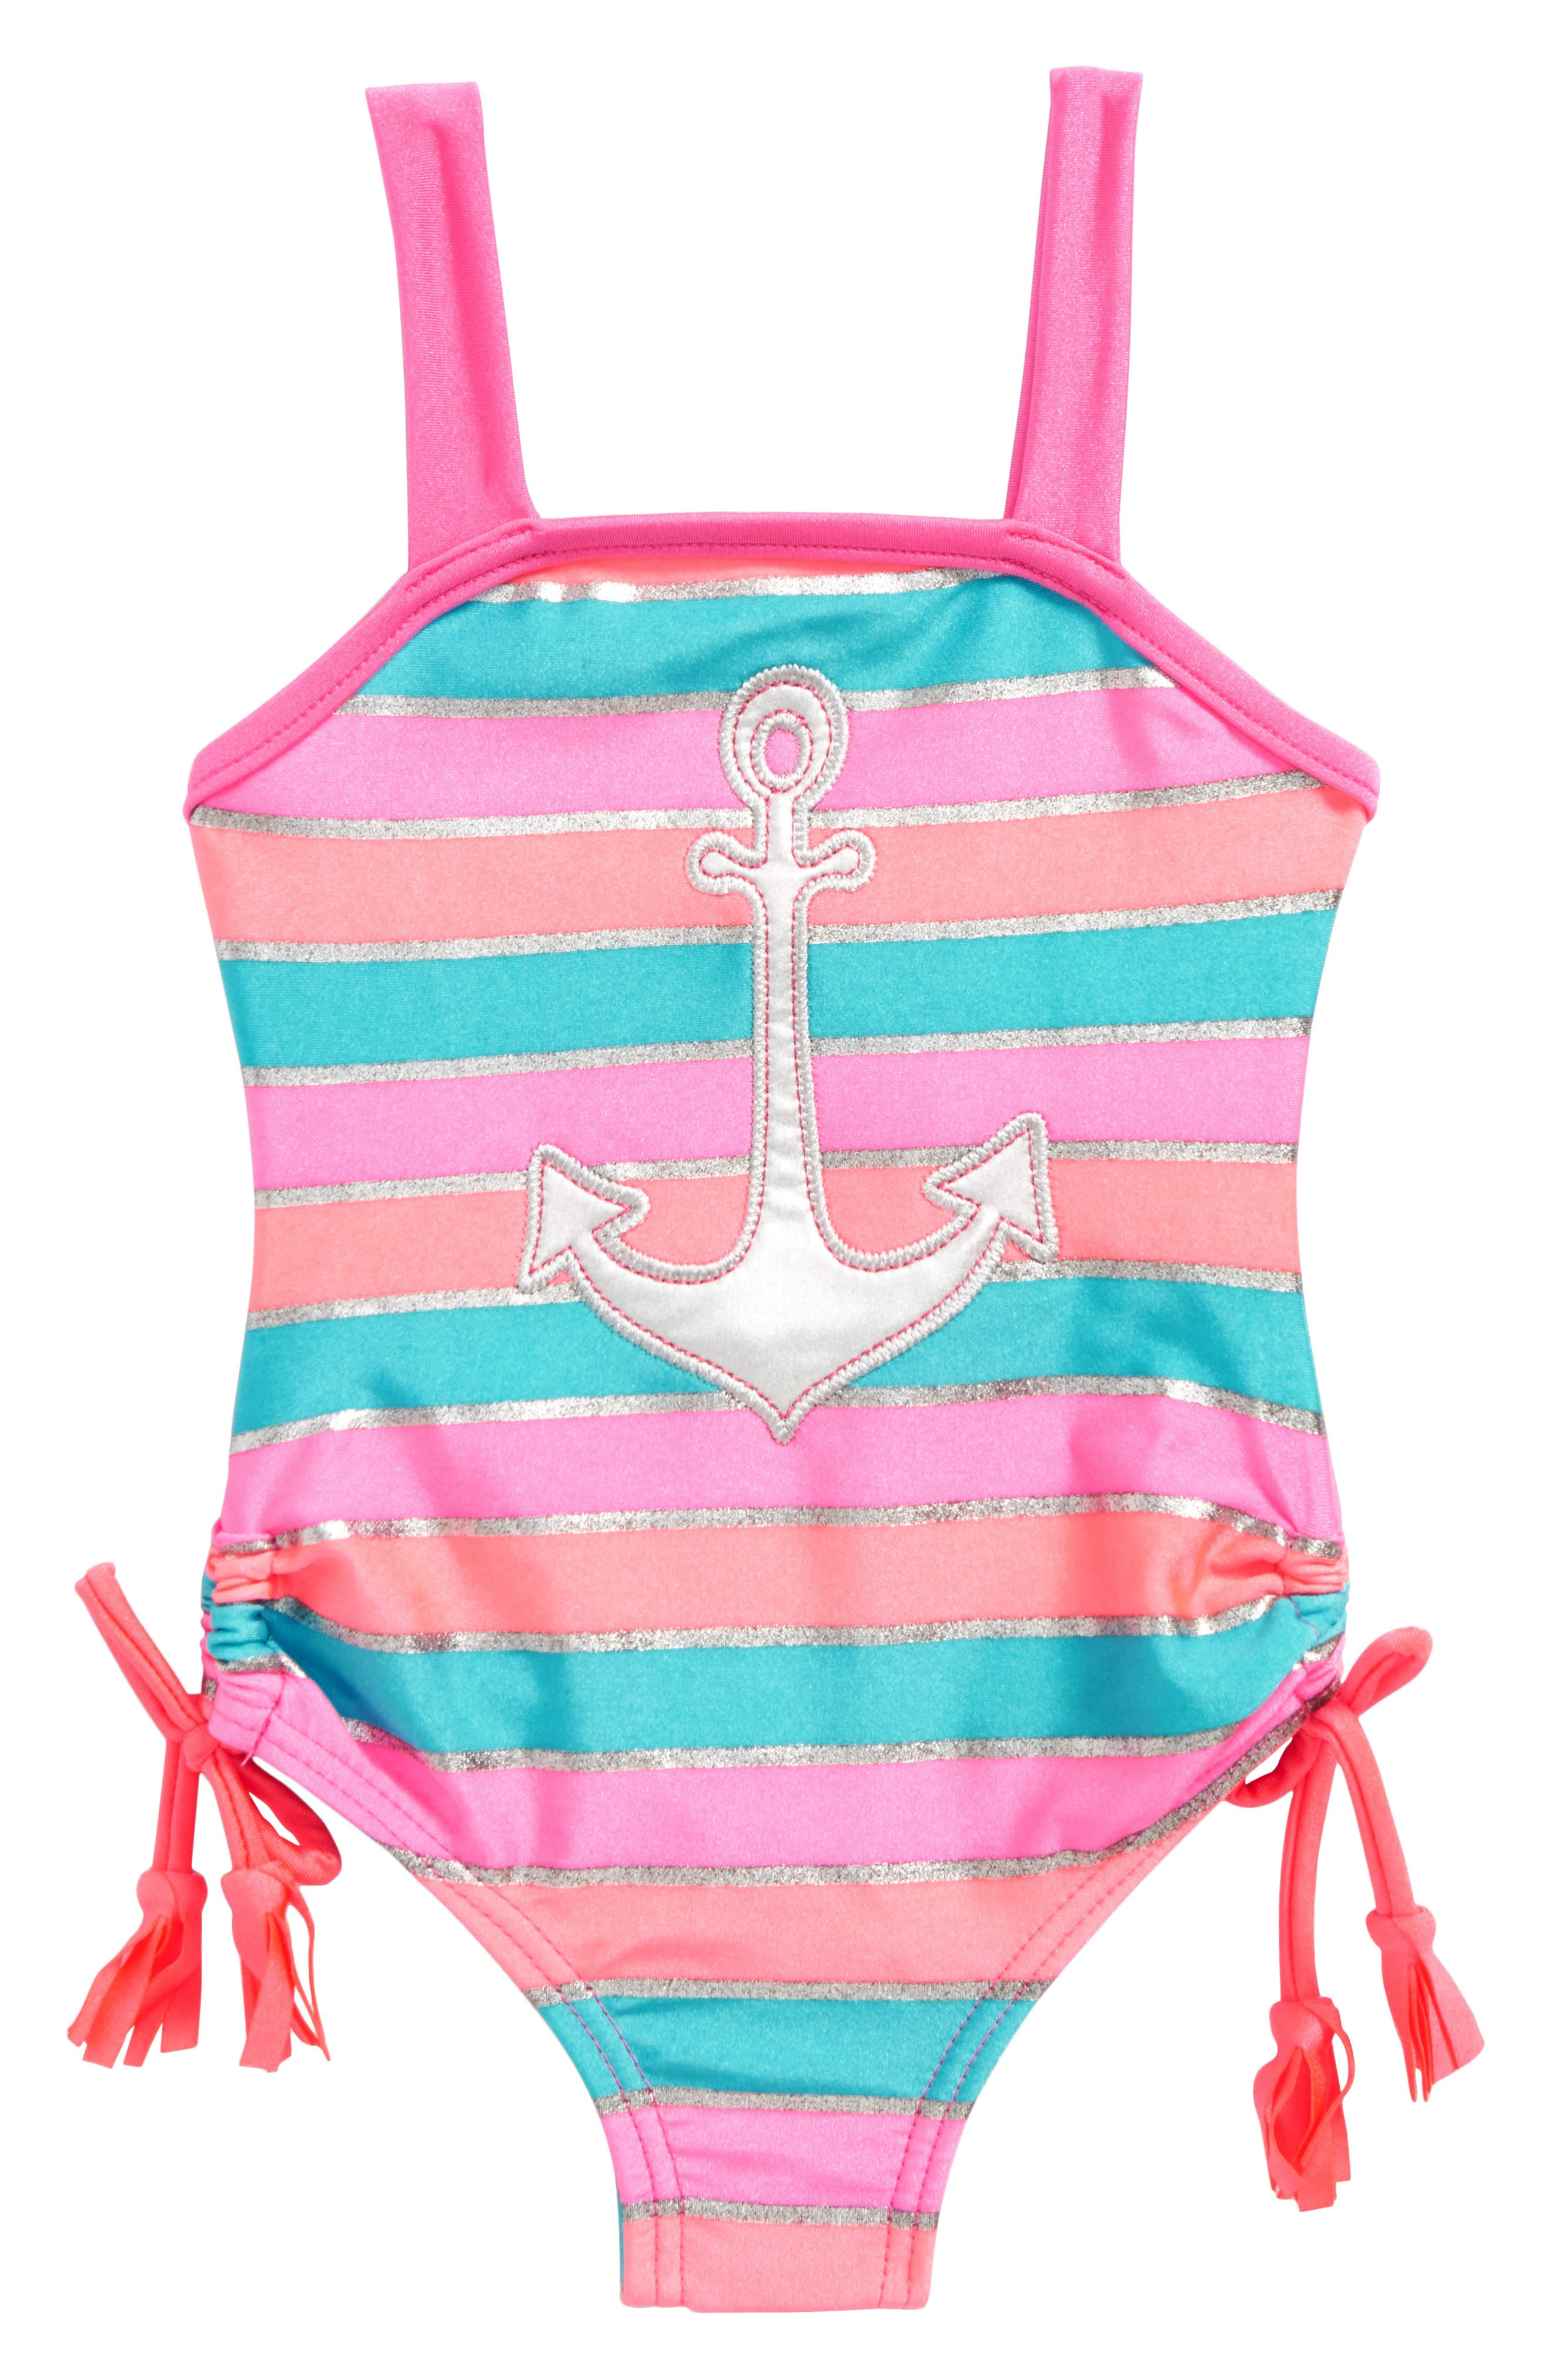 Anchor One-Piece Swimsuit,                             Main thumbnail 1, color,                             650